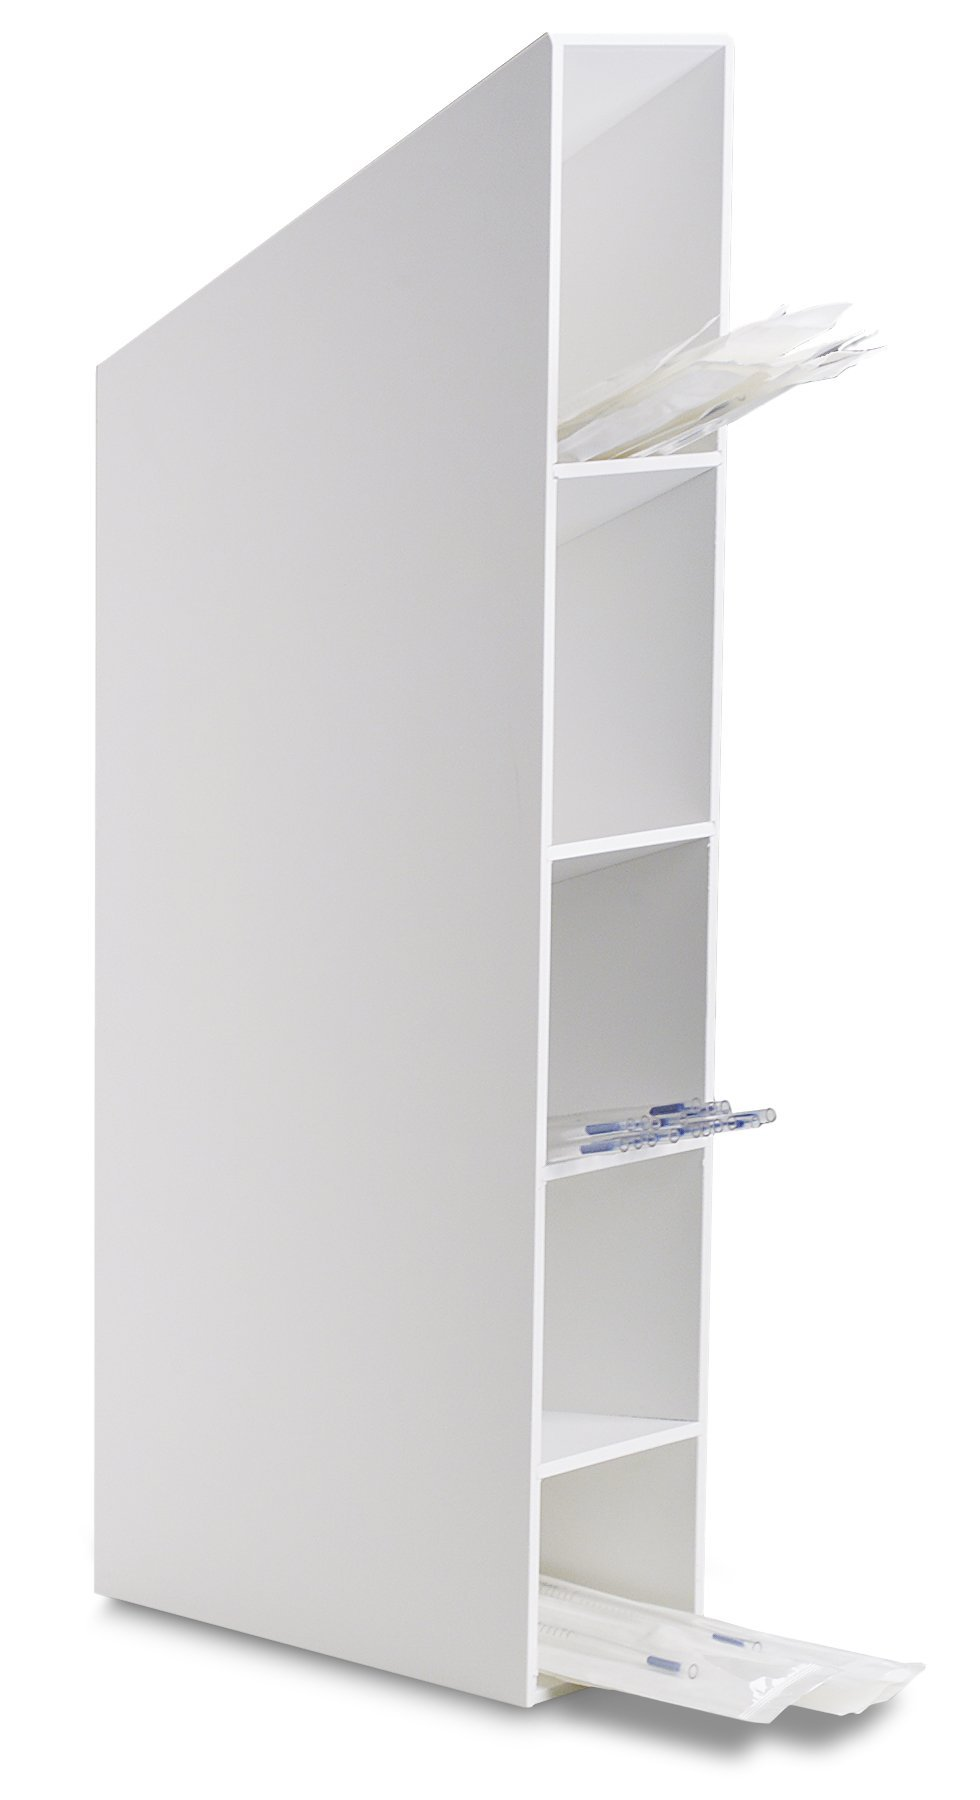 TrippNT 50913 Clear Acrylic Hood or Wall Mount Pipette Storage Bin with Mounting Magnet, 5'' Width x 27'' Height x 10'' Depth (Shown in White)